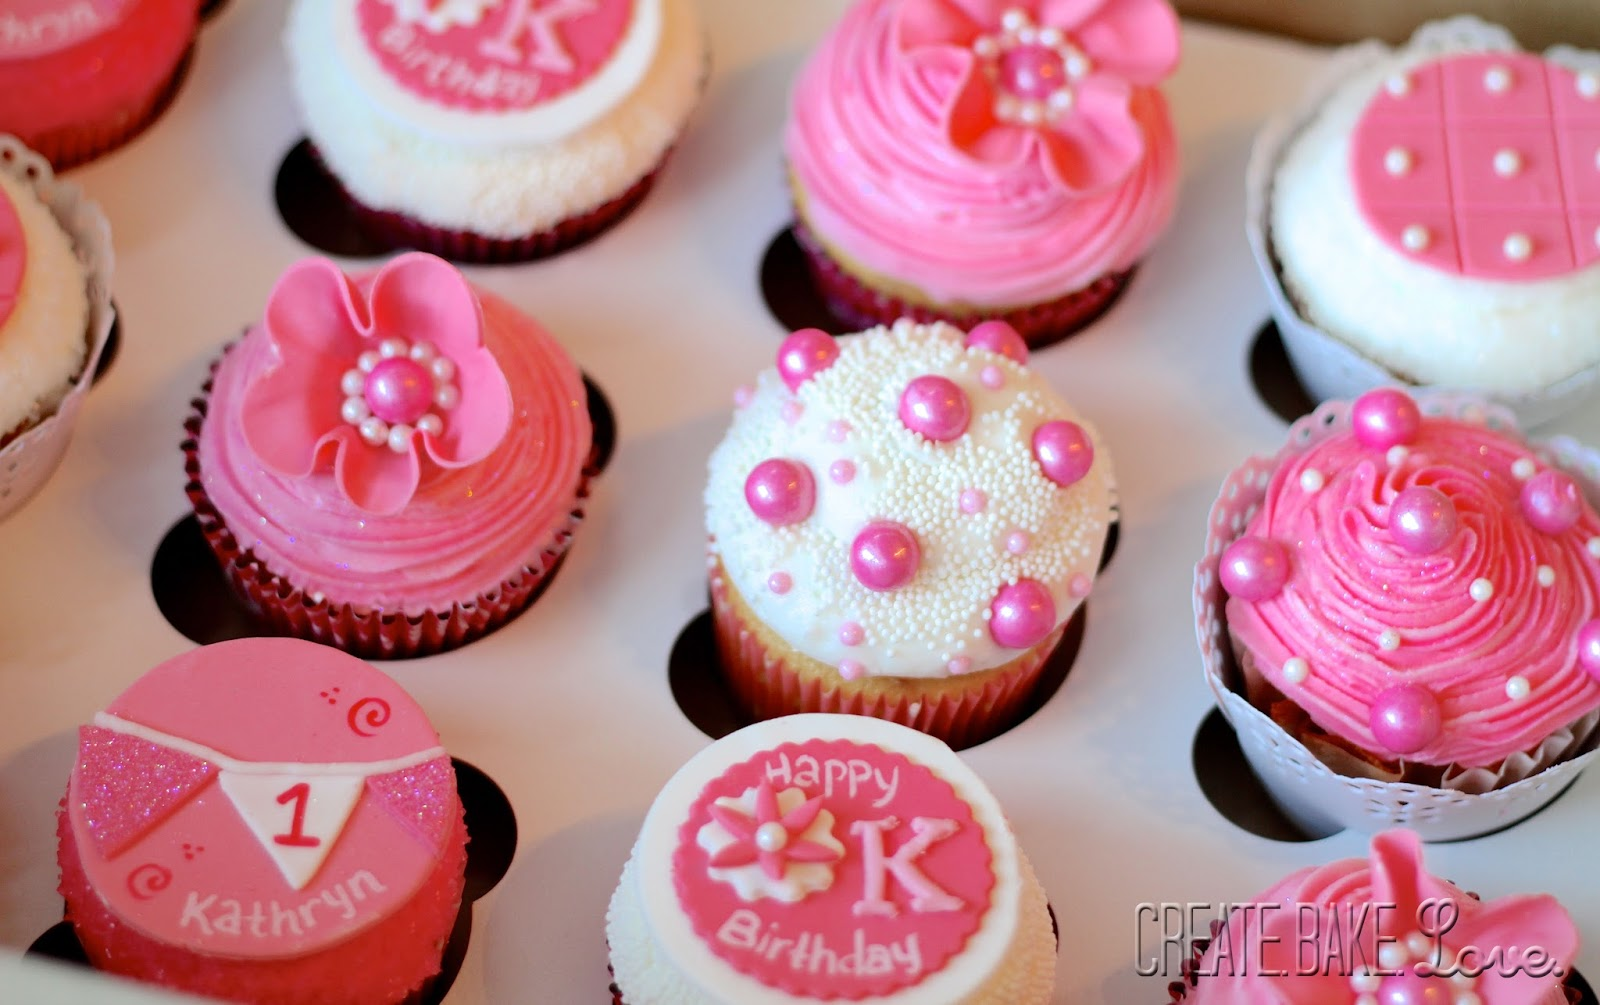 Cupcake Decorating Ideas Pink And Black : Create. Bake. Love.: Pink, Sparkly, Glittery Cupcakes